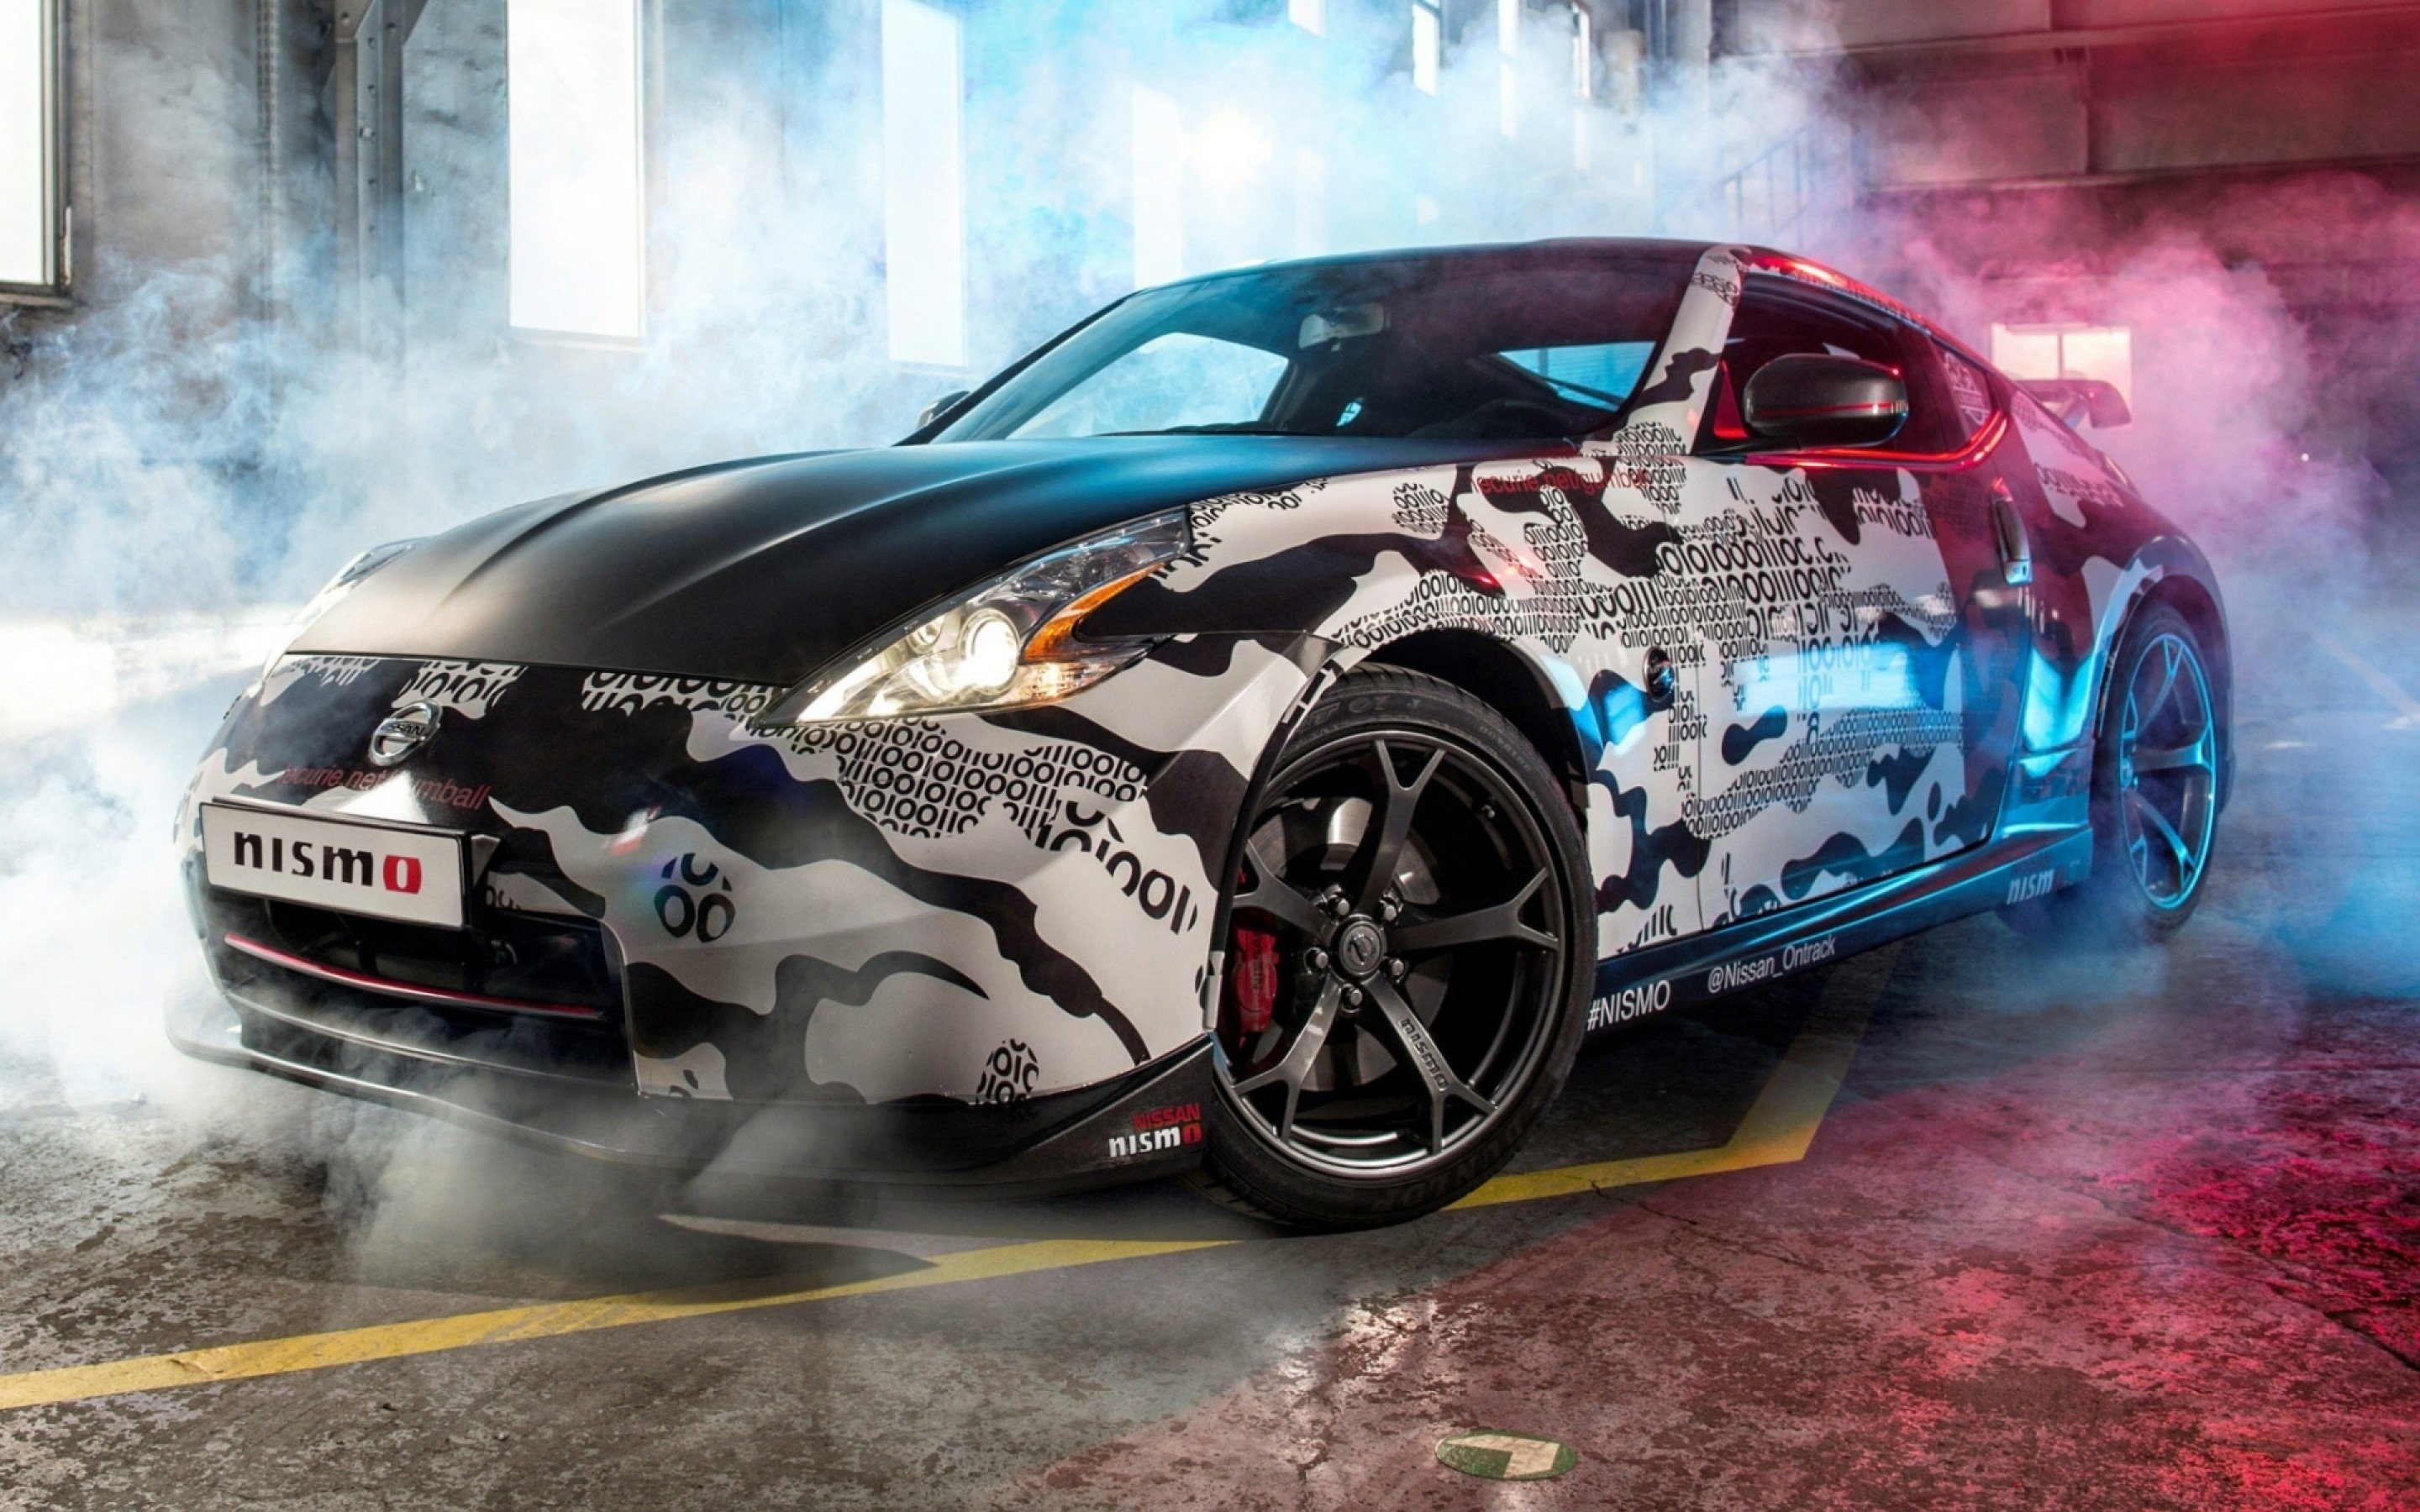 Res: 2880x1800, Nissan 370Z NISMO Front 4k HD Wallpaper